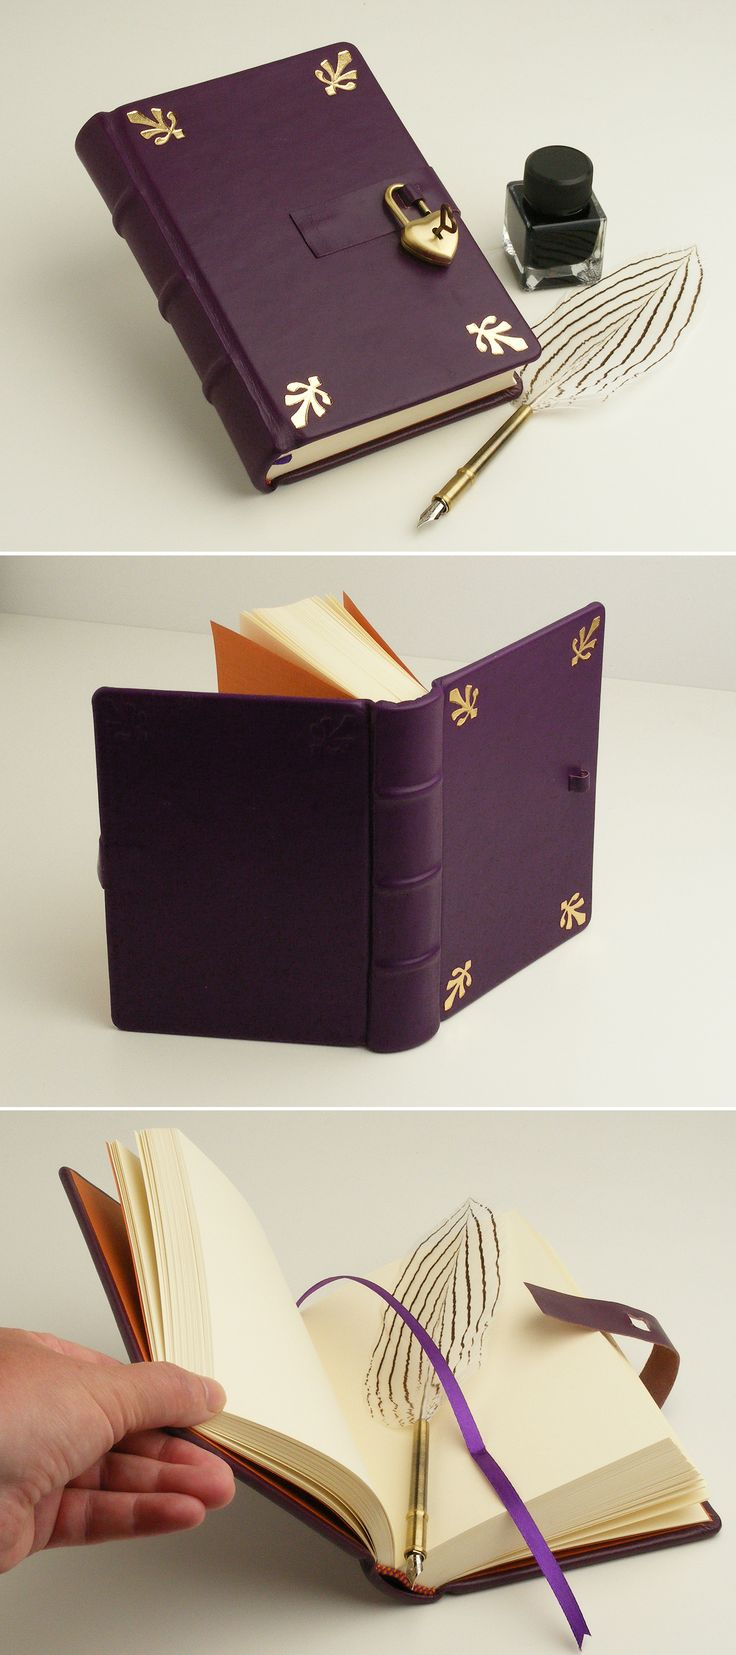 Secret diary, leather memory book, dark purple journal, gift for her, romantic gift, with heartshape padlock and one heartshape key, with gilded decoration. Personalizated with blindpressed monogram. #secretdiary #leatherjournal #leatherbook #purplediary #heartshapepadlock